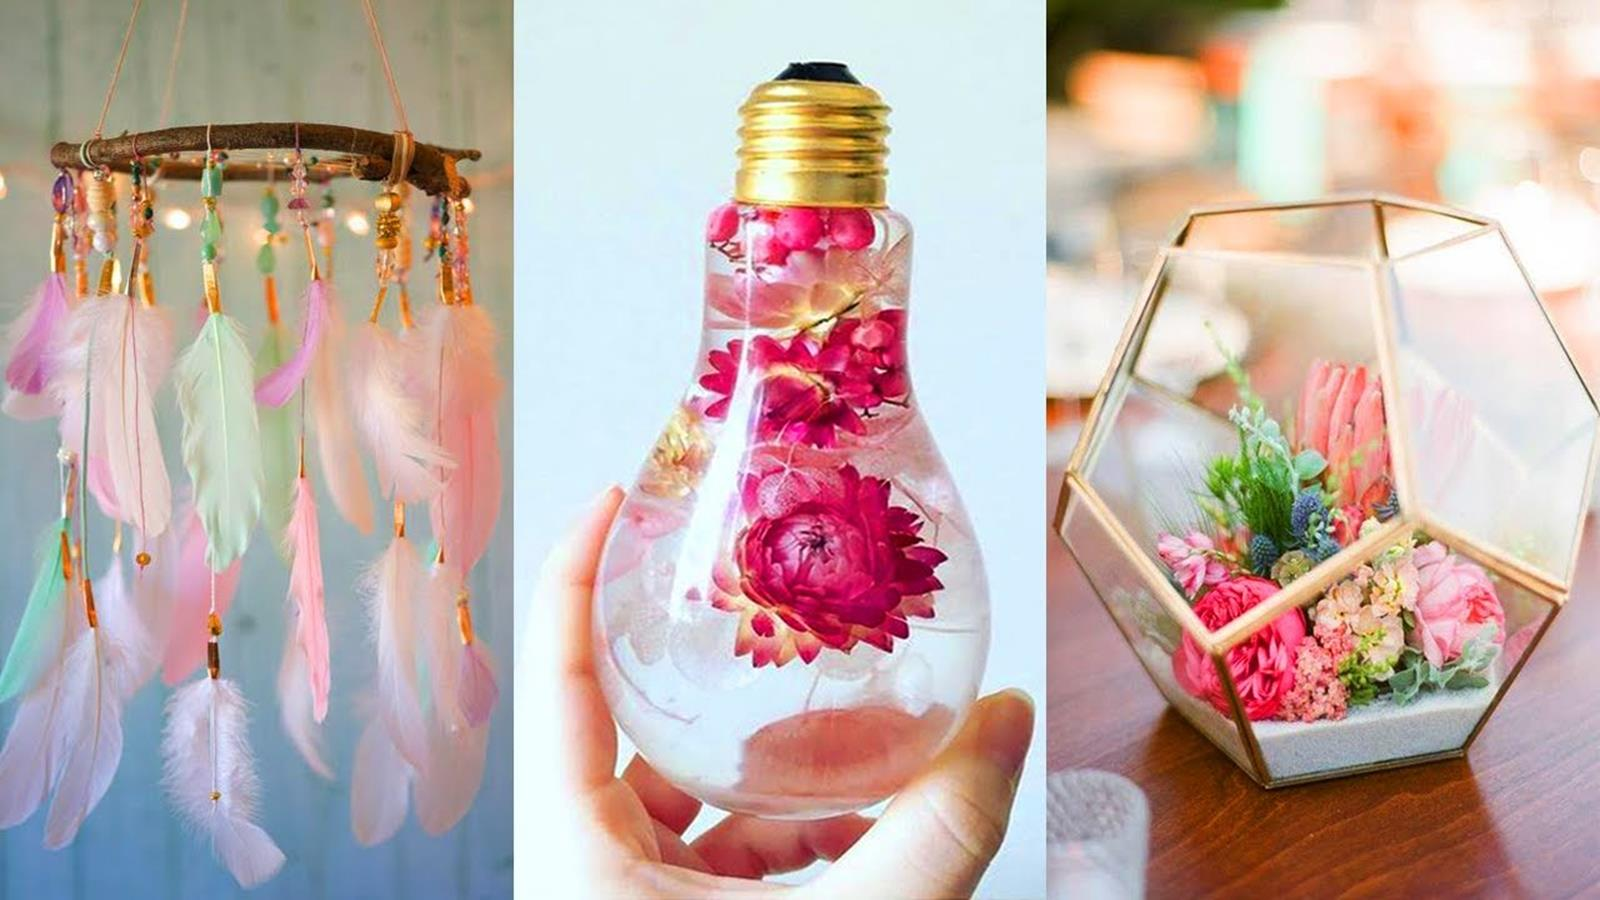 Creative Homemade Crafts for House Decorations Ideas 16